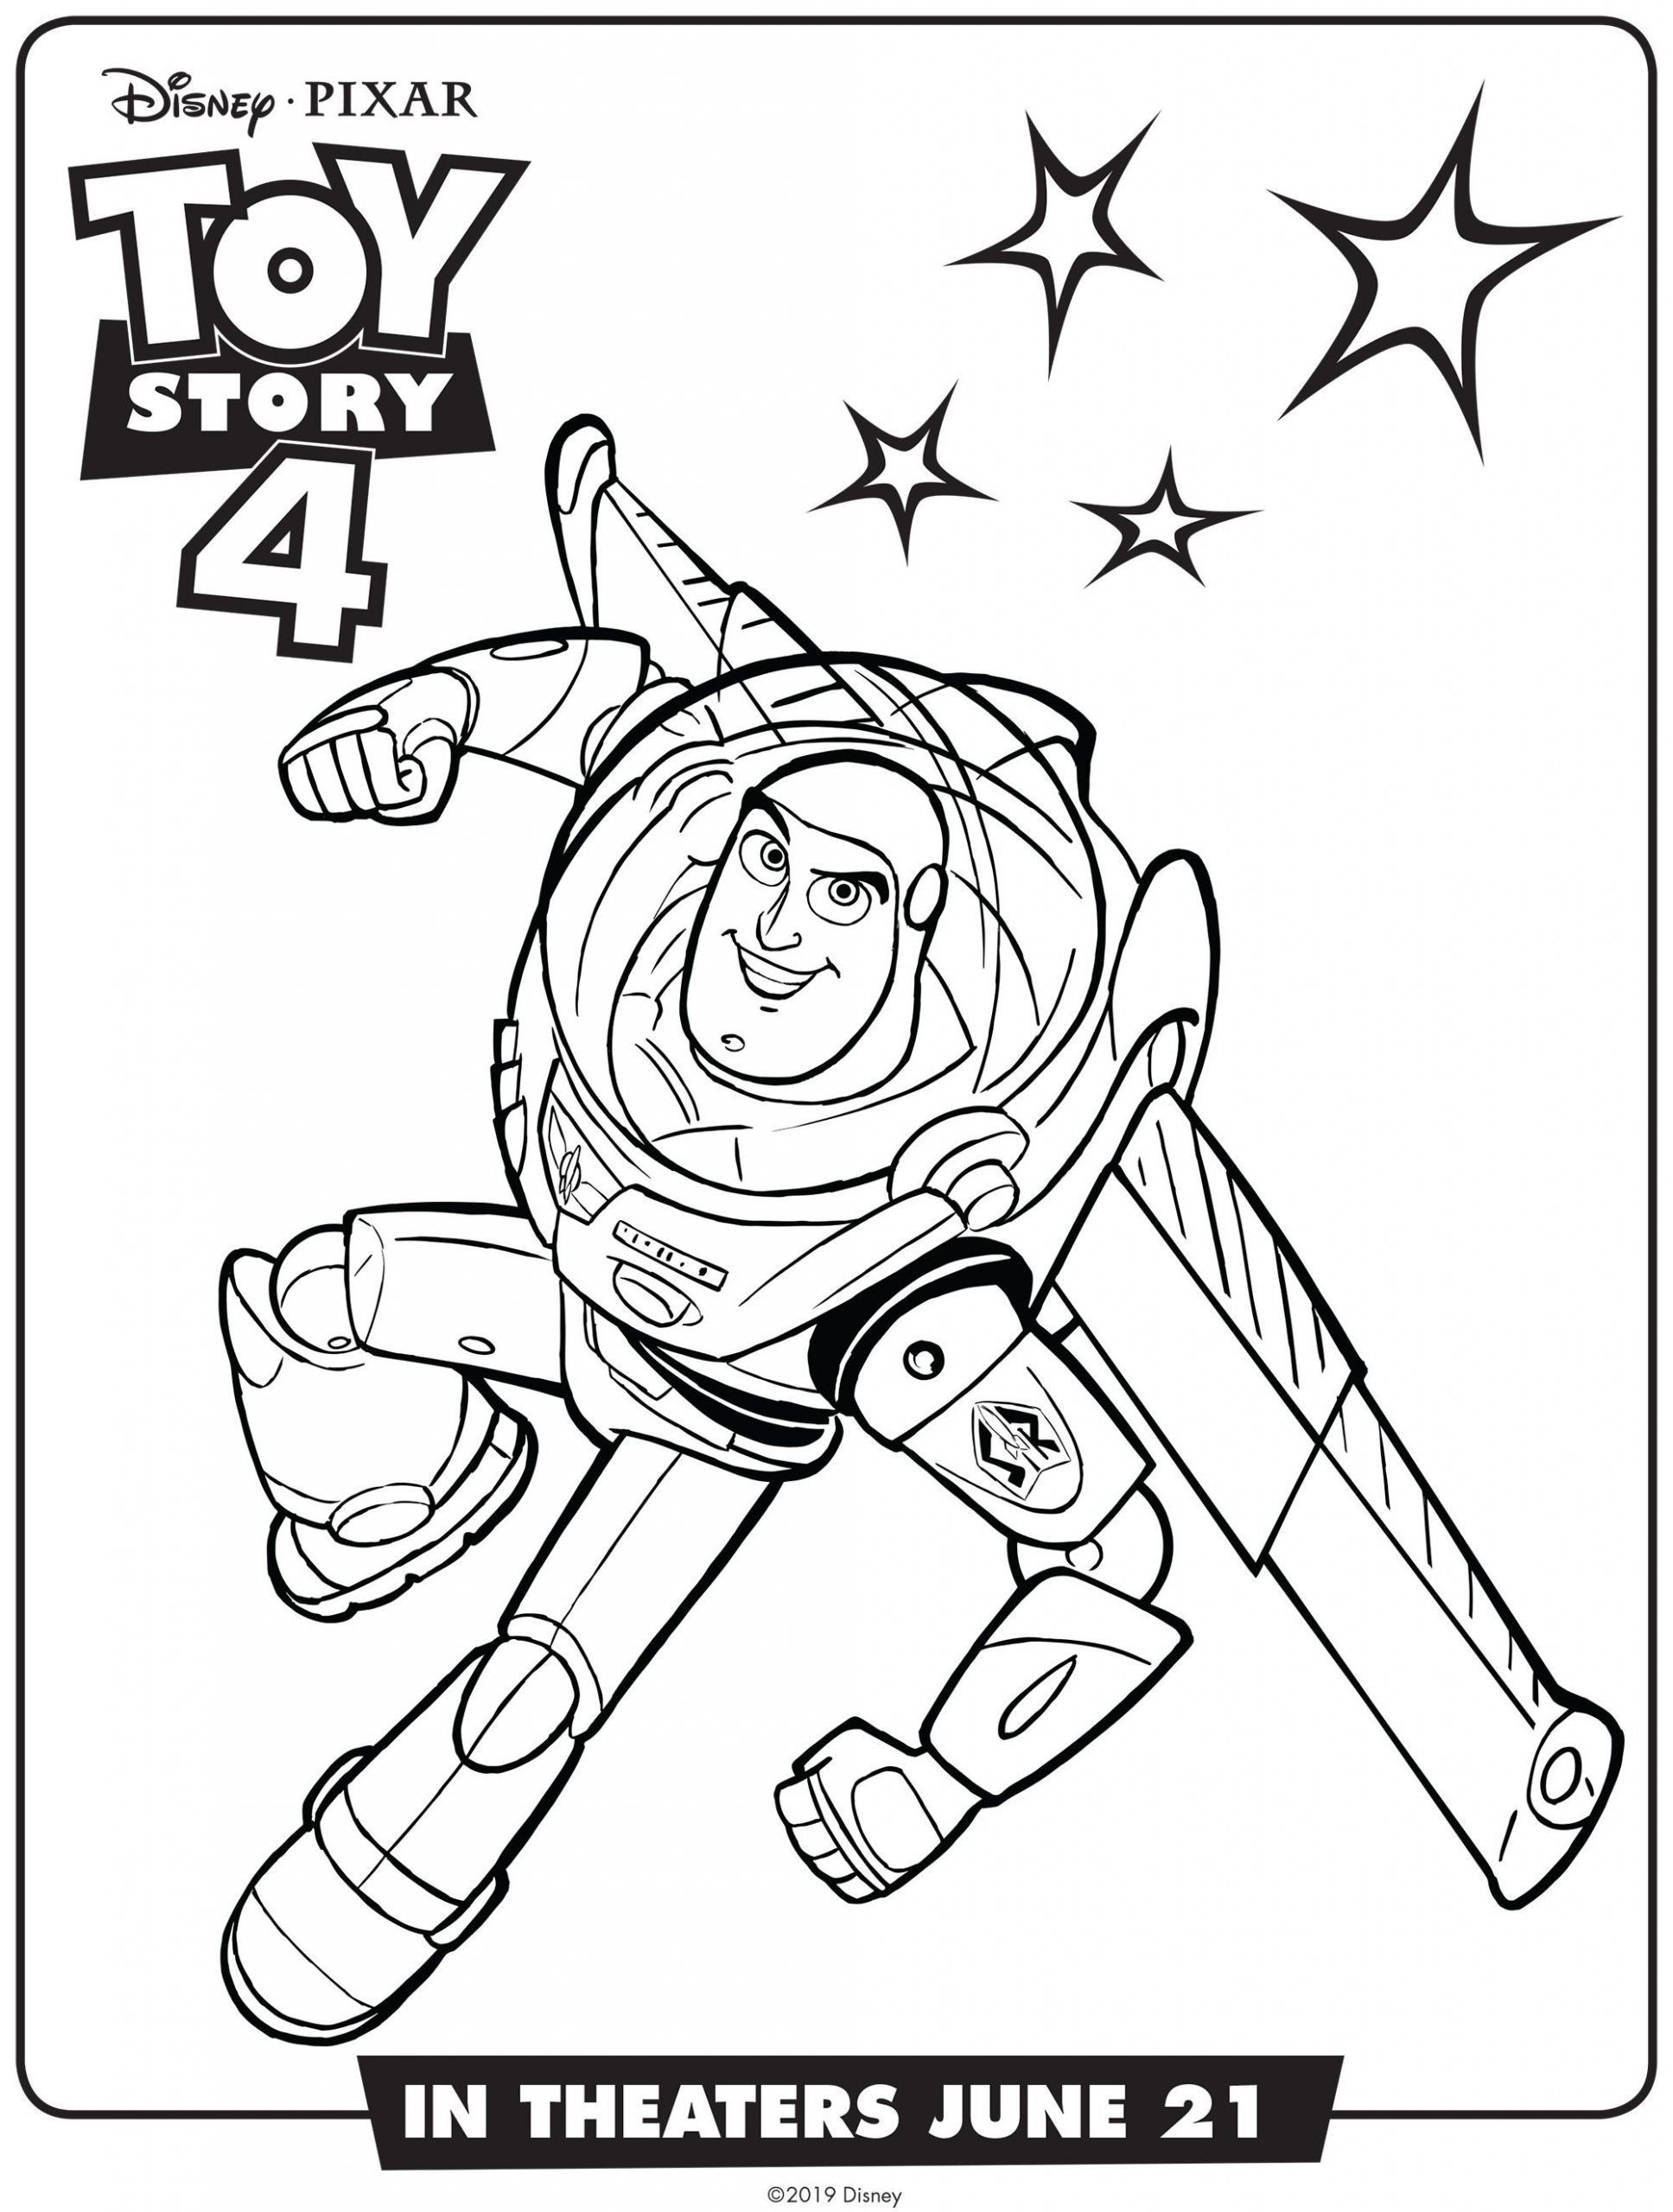 Toy Story Coloring Page Buzz Lightyear Toy Story 4 Coloring Page Disney Pixar In 2020 Toy Story Coloring Pages Disney Coloring Pages Coloring Books